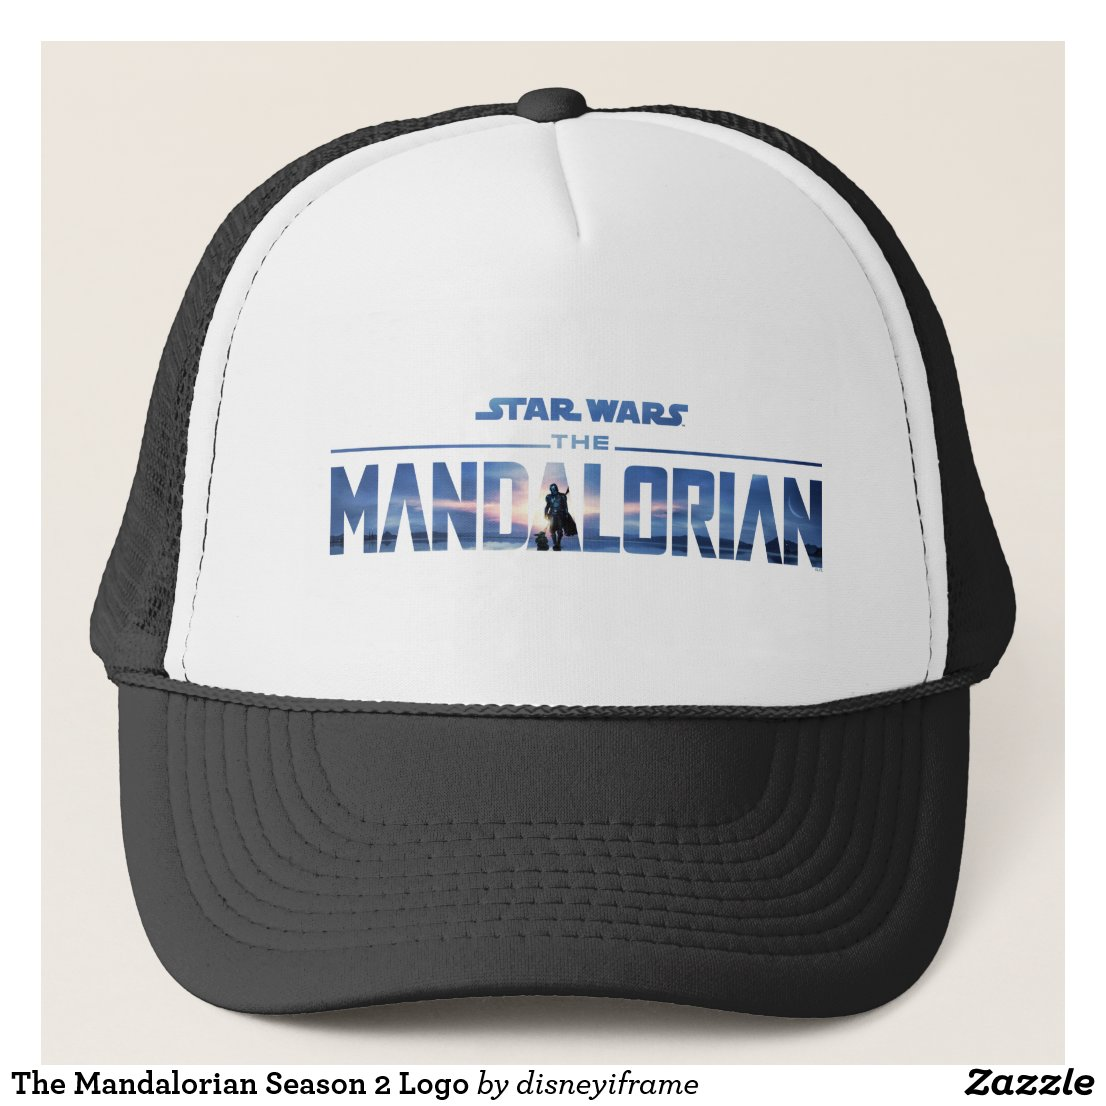 Star Wars The Mandalorian Season 2 Merchandise Out Now What S On Disney Plus